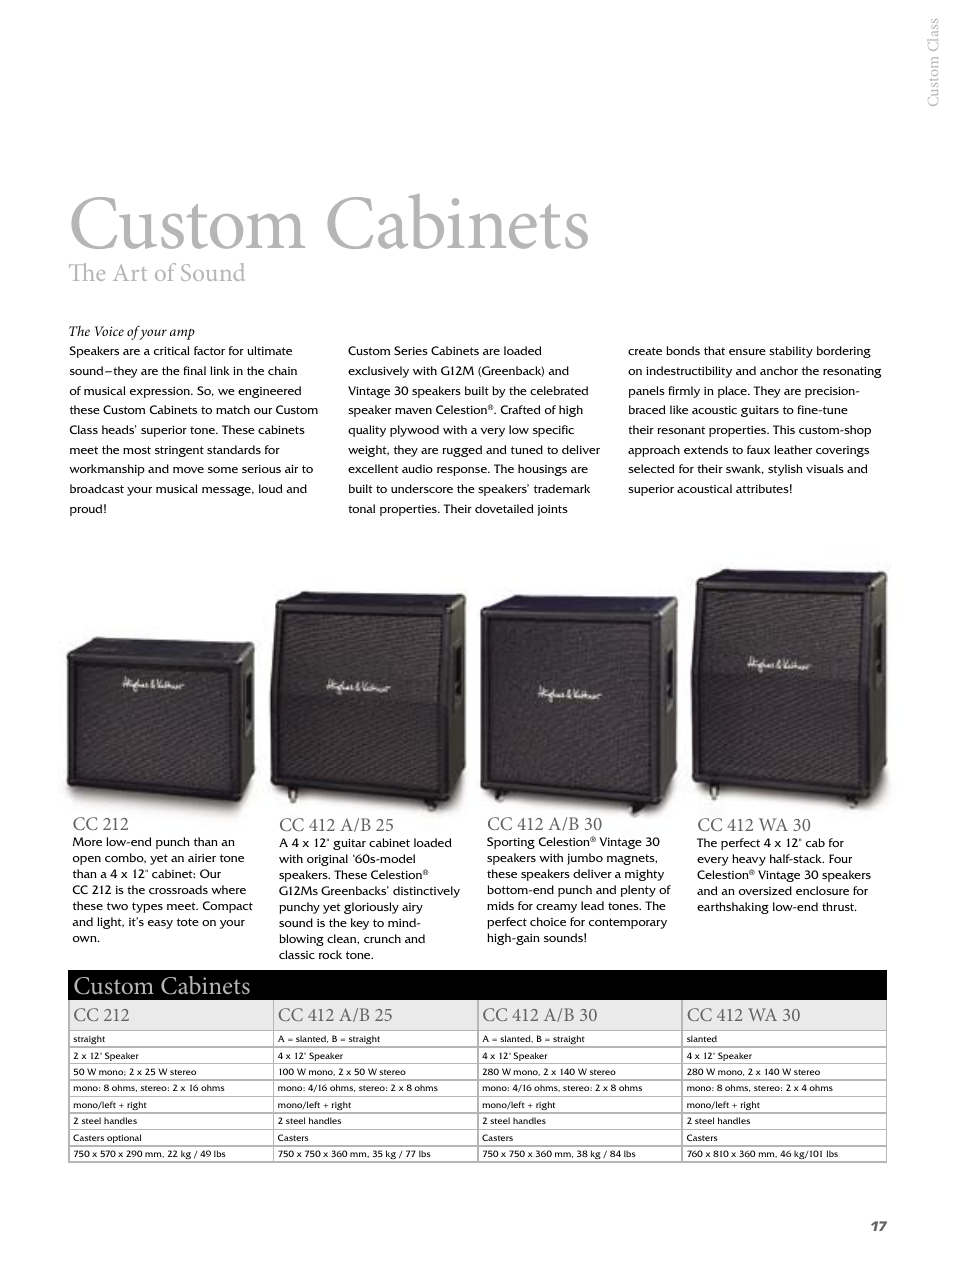 Custom Cabinets The Art Of Sound Cc 212 Hughes 4 X 12 Speaker Cabinet Wiring Diagram Kettner Guitar Bass Amplification User Manual Page 17 44